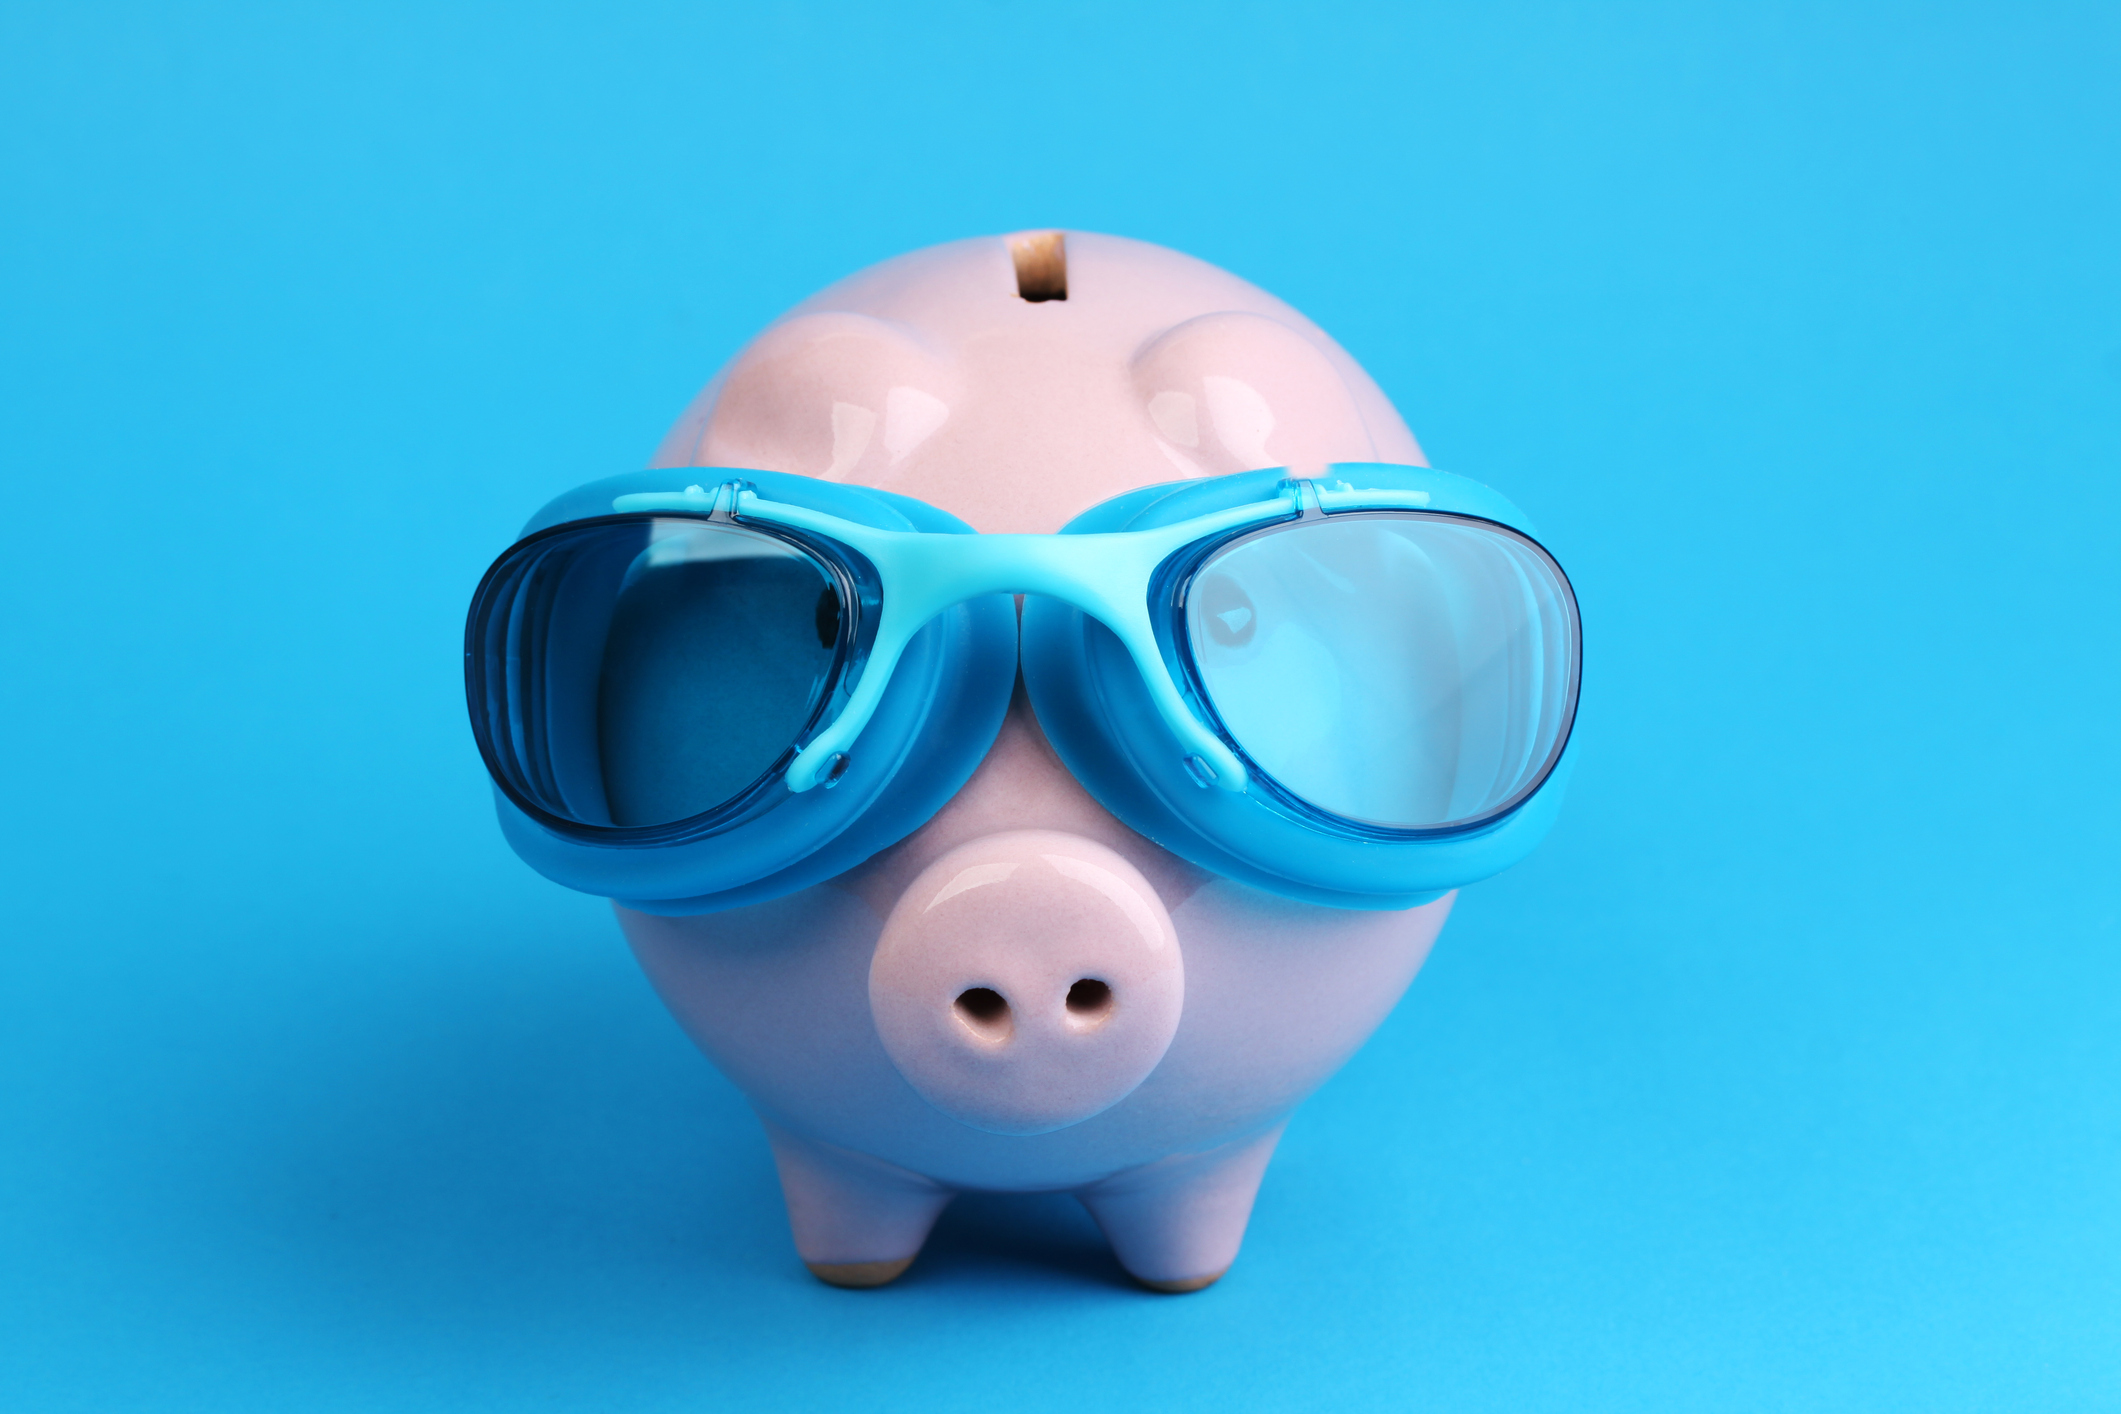 Pink piggy bank with blue swimming goggles on blue background like swimmer